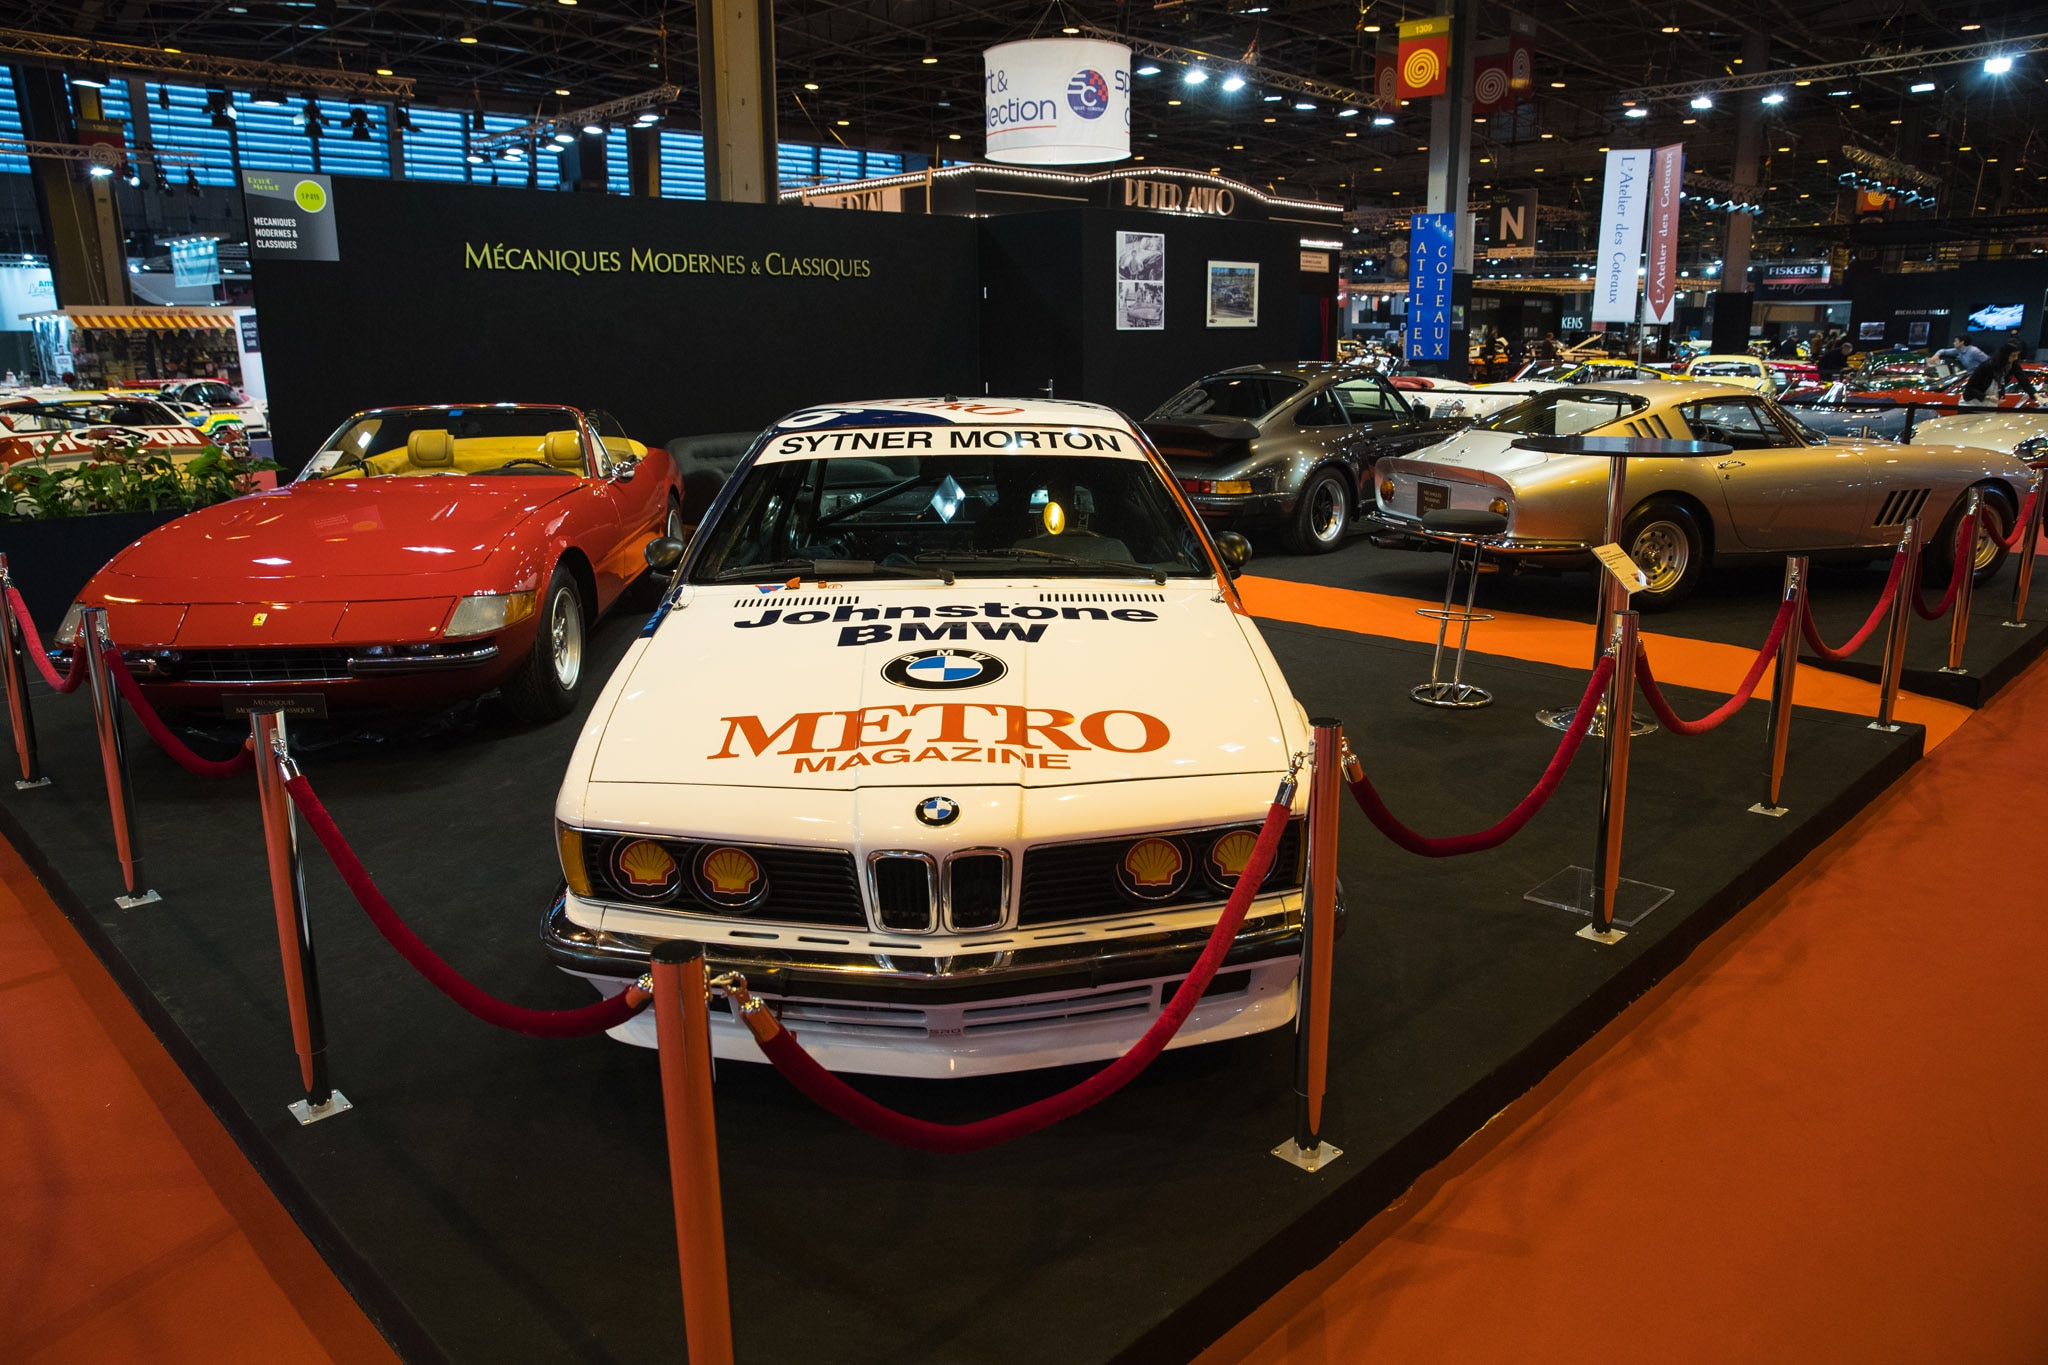 Wm 2018 Retromobile 20